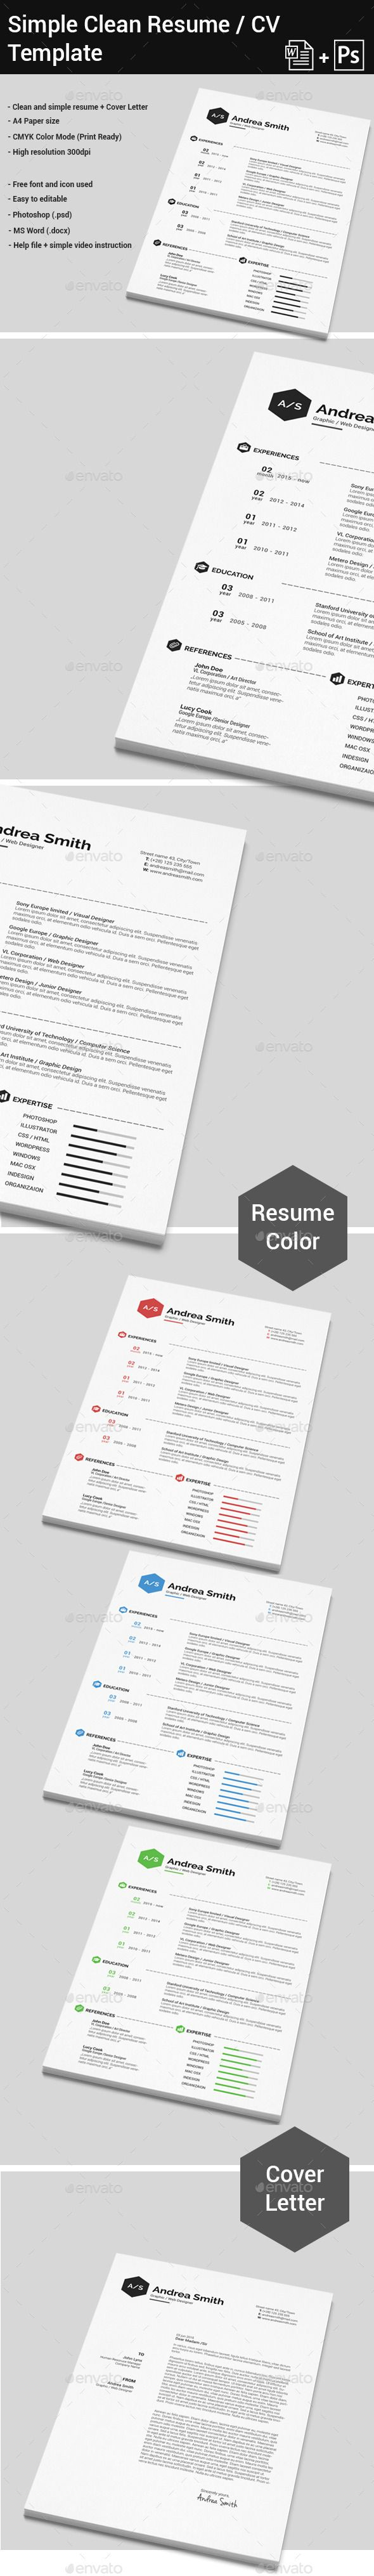 simple clean resume cover letter - Simple Resume Cover Letter Template